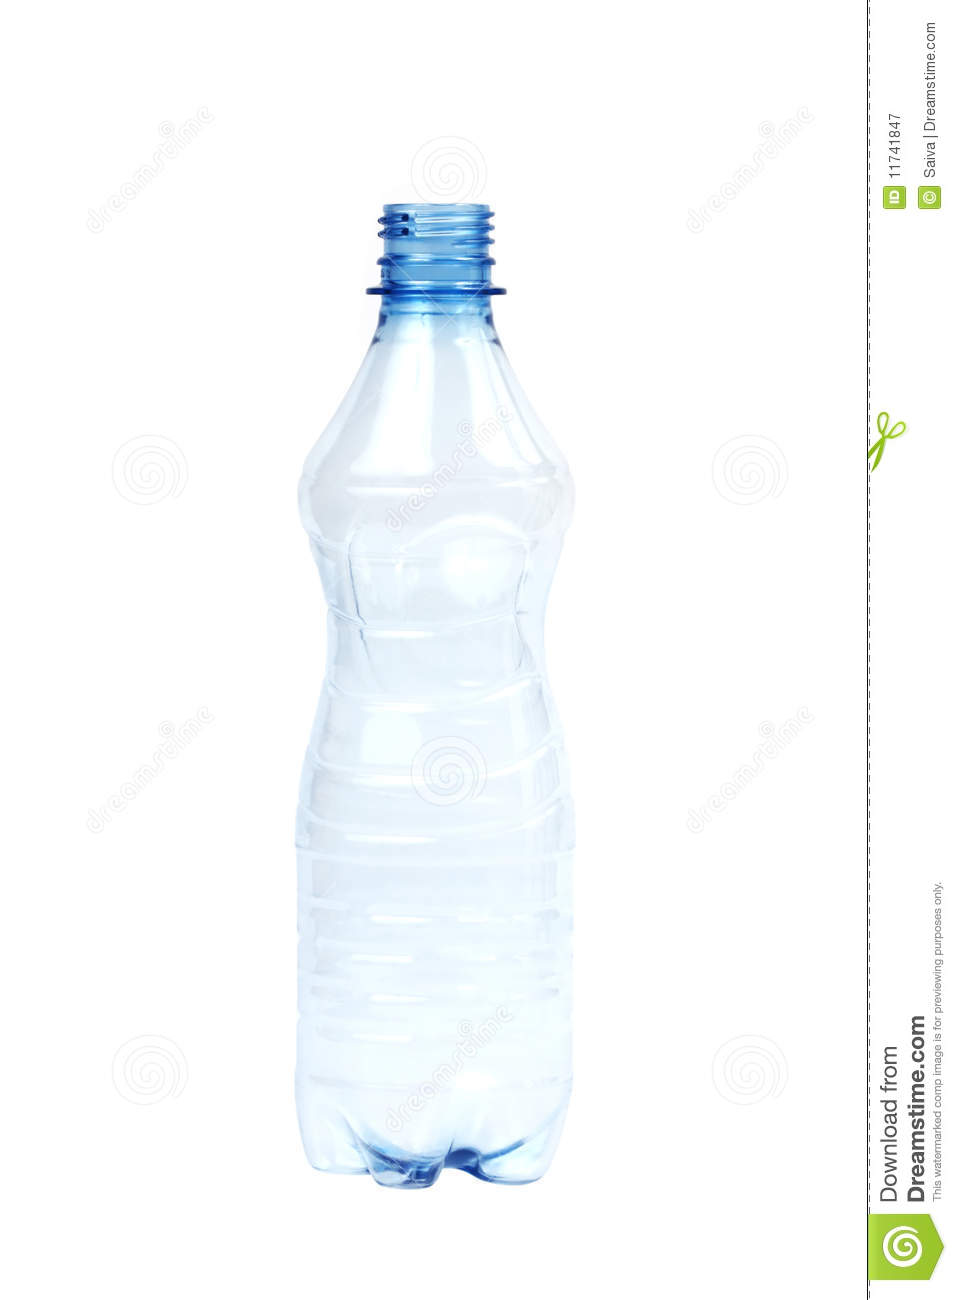 Bottle Of Water Clipart Black And White